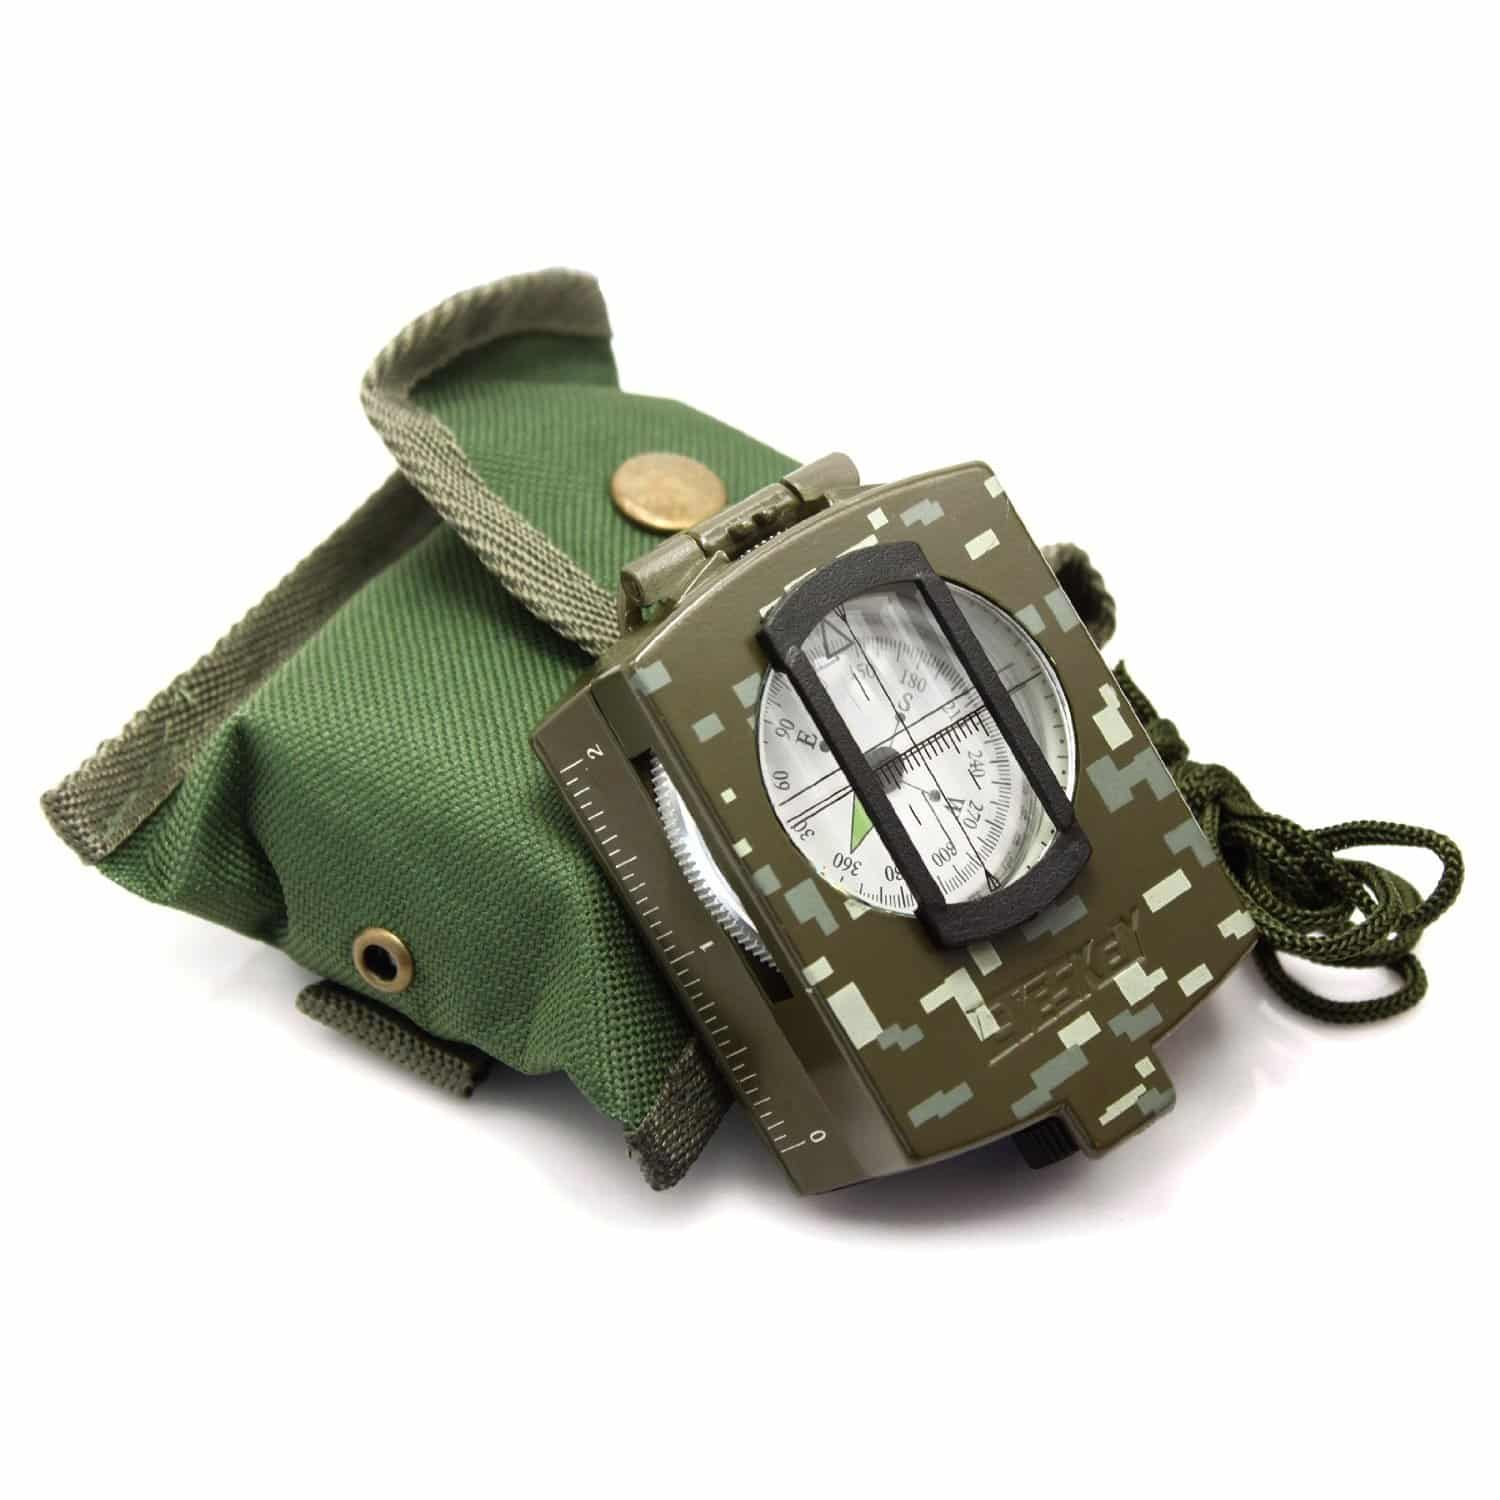 Waterproof Military Lensatic Sighting Compass with Magnifying Glass Mapping Ruler Reading Scale Distance Calculator for Navigation Hiking Camping Adventure